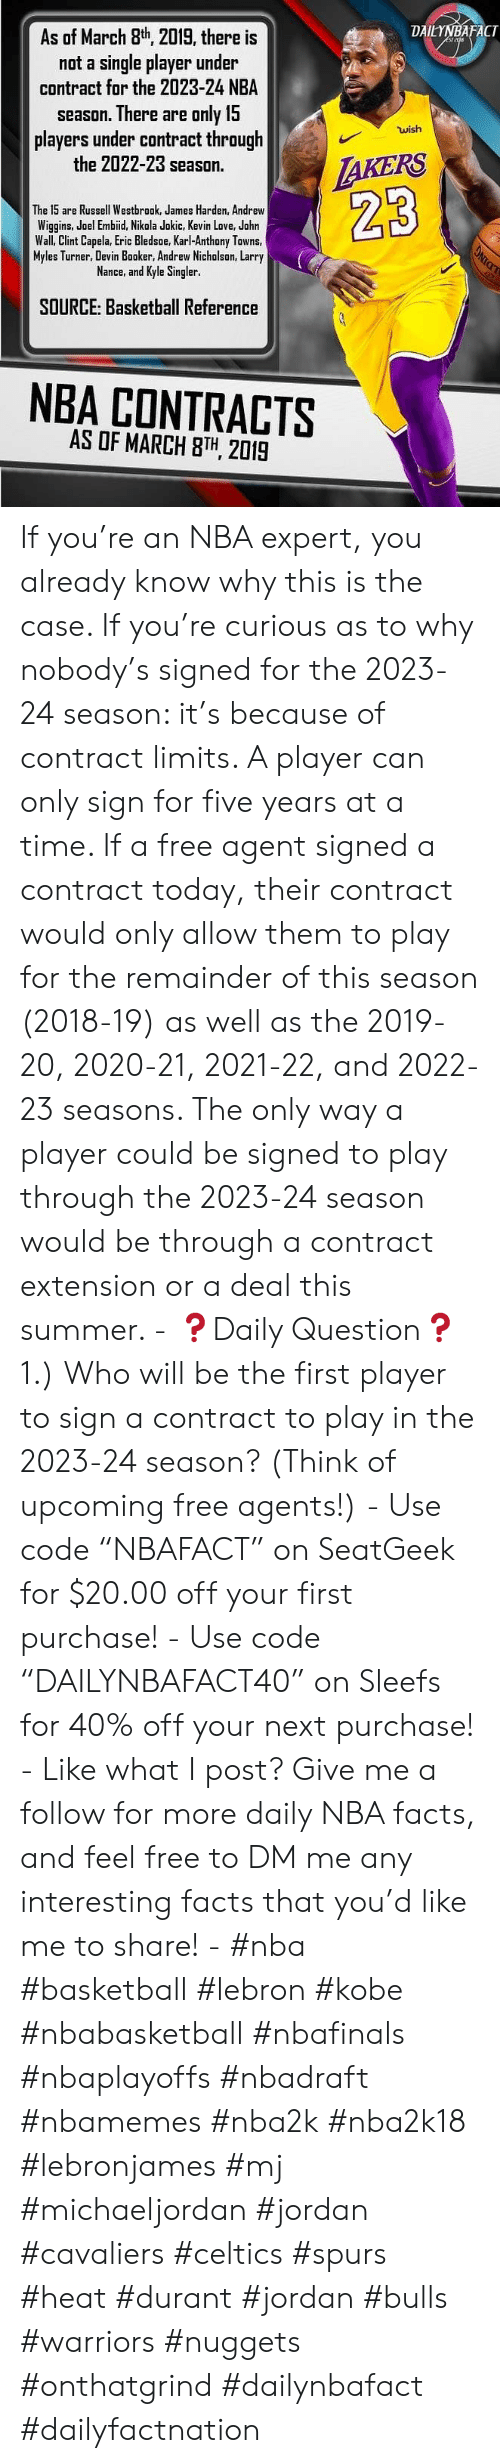 """Karl-Anthony Towns: DAILYNBAFACT  As of March 8th 2019, there is  not a single player under  contract for the 2023-24 NBA  season. There are only 15  players under contract through  the 2022-23 season.  wish  The 15 are Russell Westbrook, James Harden, Andrew  Wiggins, Joel Embiid, Nikola Jokic, Kevin Love, Jahn  Wall, Clint Capela, Eric Bledsoe, Karl-Anthony Towns,  Myles Turner, Devin Booker, Andrew Nichalsan, Larry  Nance, and Kyle Singler  23  SOURCE: Basketball Reference  NBA CONTRACTS  AS OF MARCH 8TH, 2019 If you're an NBA expert, you already know why this is the case. If you're curious as to why nobody's signed for the 2023-24 season: it's because of contract limits. A player can only sign for five years at a time. If a free agent signed a contract today, their contract would only allow them to play for the remainder of this season (2018-19) as well as the 2019-20, 2020-21, 2021-22, and 2022-23 seasons. The only way a player could be signed to play through the 2023-24 season would be through a contract extension or a deal this summer. - ❓Daily Question❓ 1.) Who will be the first player to sign a contract to play in the 2023-24 season? (Think of upcoming free agents!) - Use code """"NBAFACT"""" on SeatGeek for $20.00 off your first purchase! - Use code """"DAILYNBAFACT40"""" on Sleefs for 40% off your next purchase! - Like what I post? Give me a follow for more daily NBA facts, and feel free to DM me any interesting facts that you'd like me to share! - #nba #basketball #lebron #kobe #nbabasketball #nbafinals #nbaplayoffs #nbadraft #nbamemes #nba2k #nba2k18 #lebronjames #mj #michaeljordan #jordan #cavaliers #celtics #spurs #heat #durant #jordan #bulls #warriors #nuggets #onthatgrind #dailynbafact #dailyfactnation"""